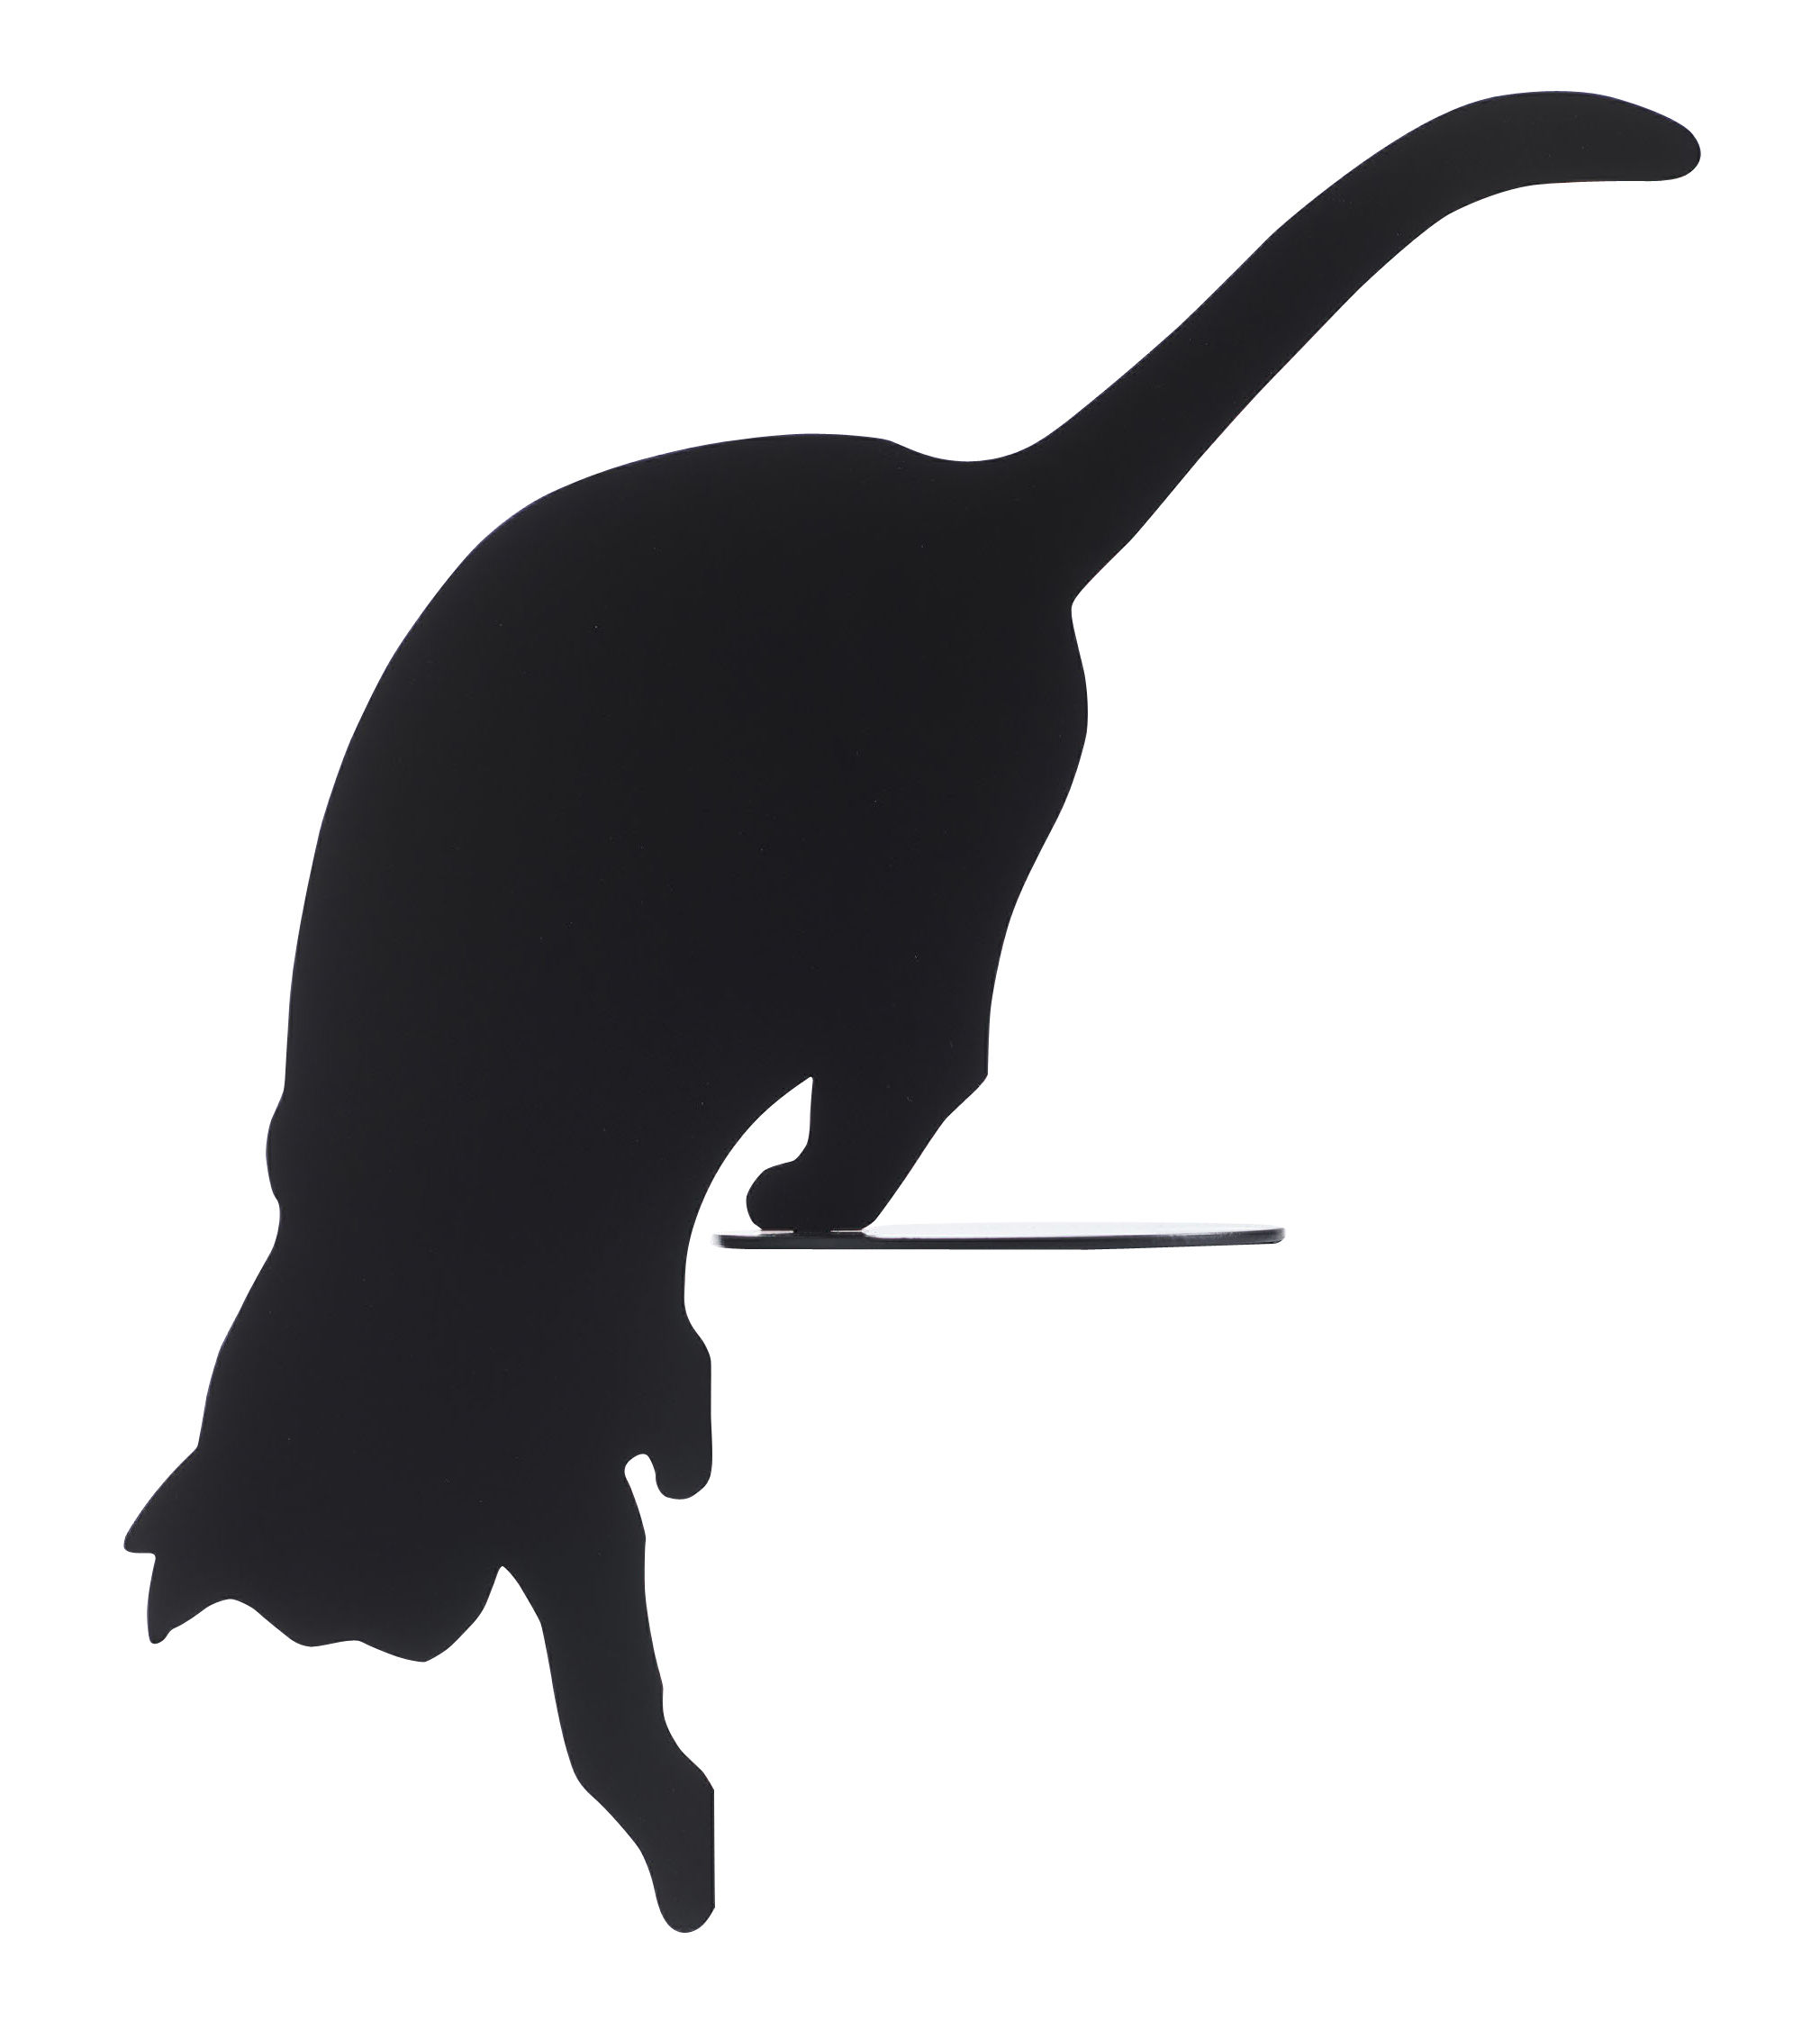 Decoration - Home Accessories - Ombres de chats N°3 Decoration - / free-standing - 45 x H 47 cm by Opinion Ciatti - No. 3 / Black - Steel